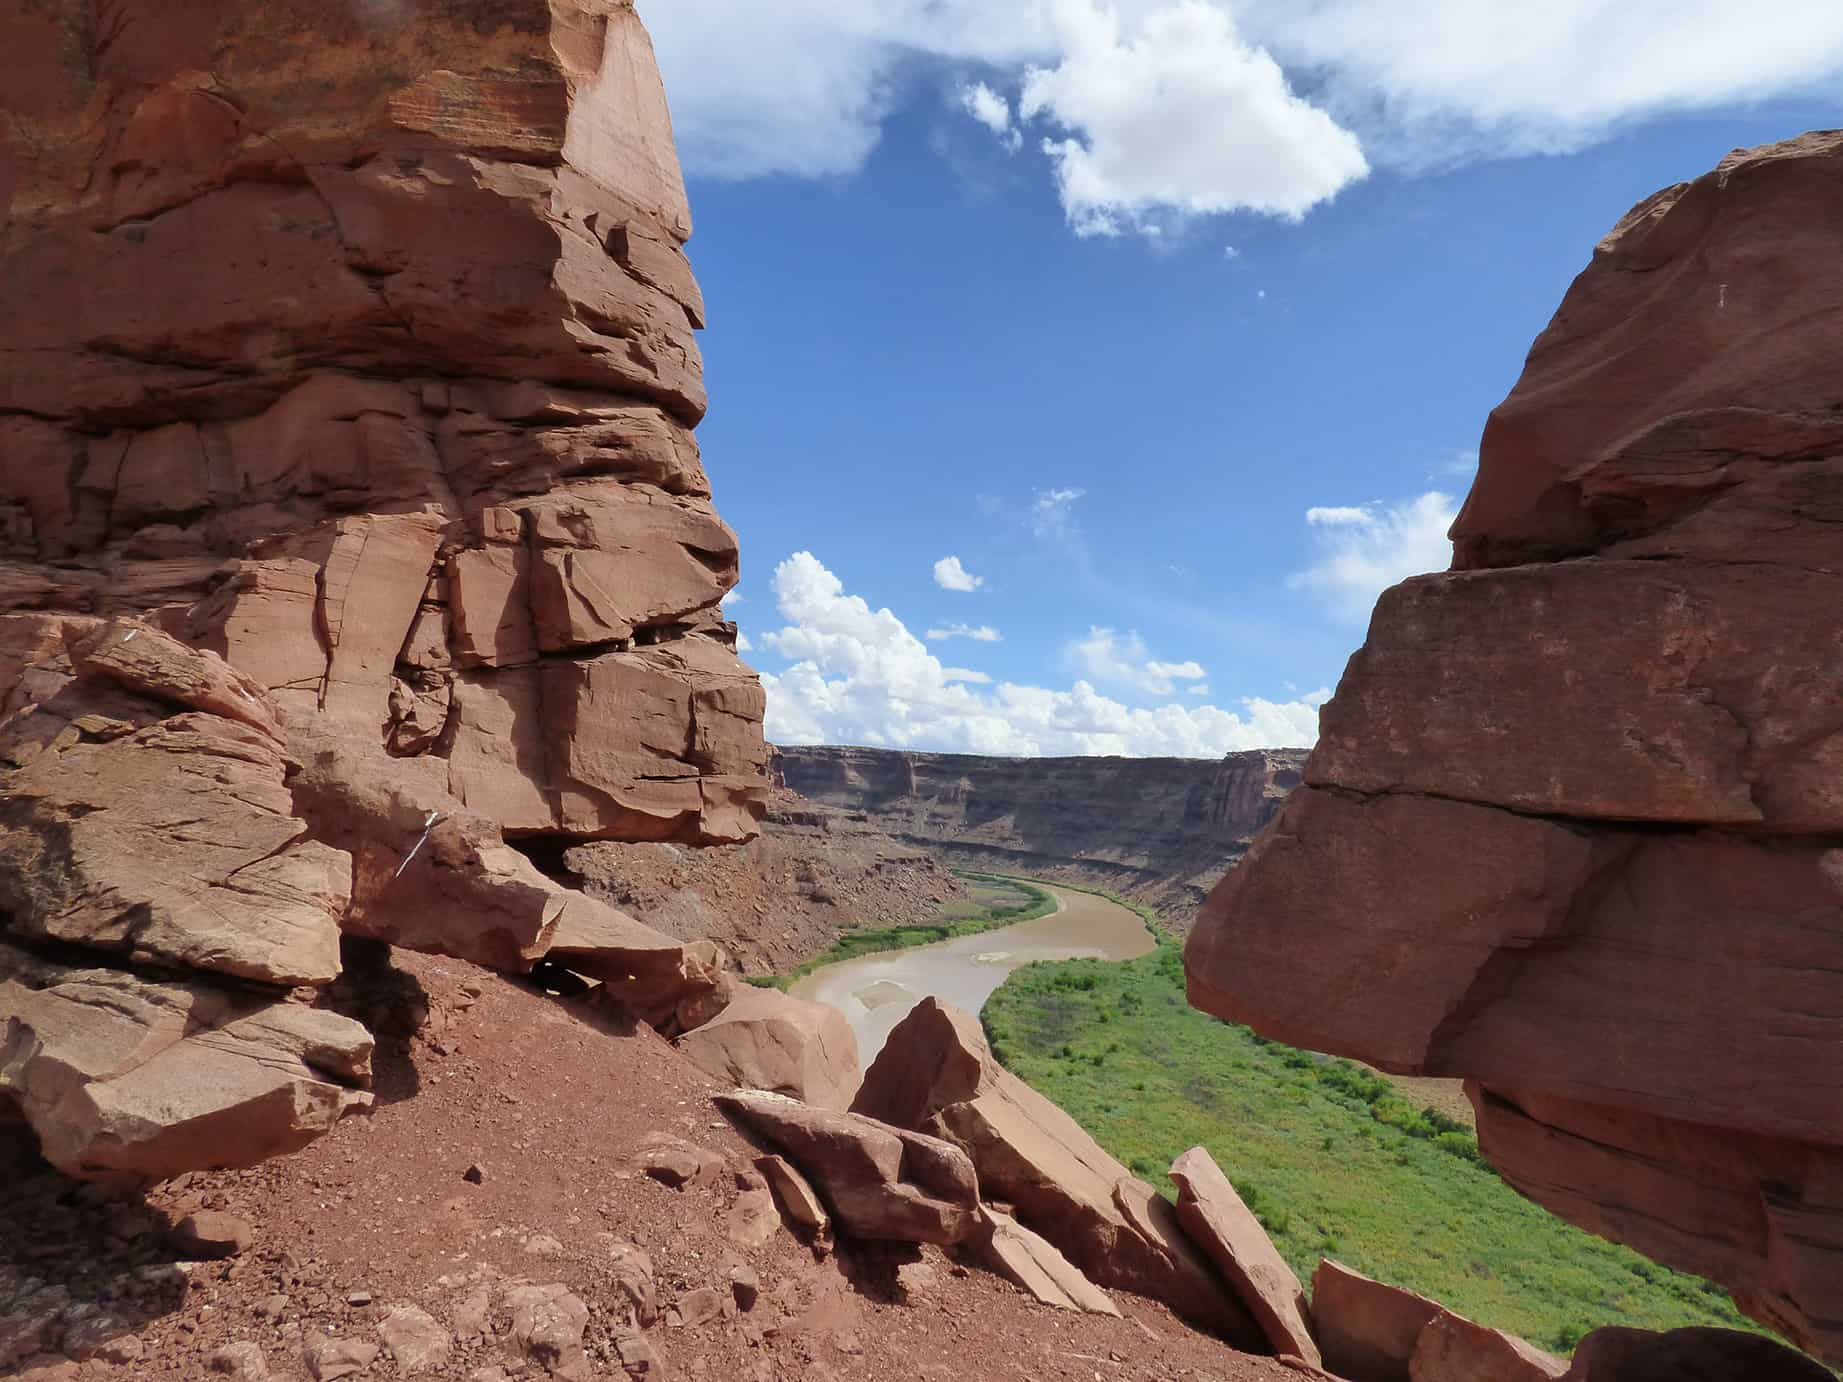 Looking down to the Green River from high above on the canyon wall.